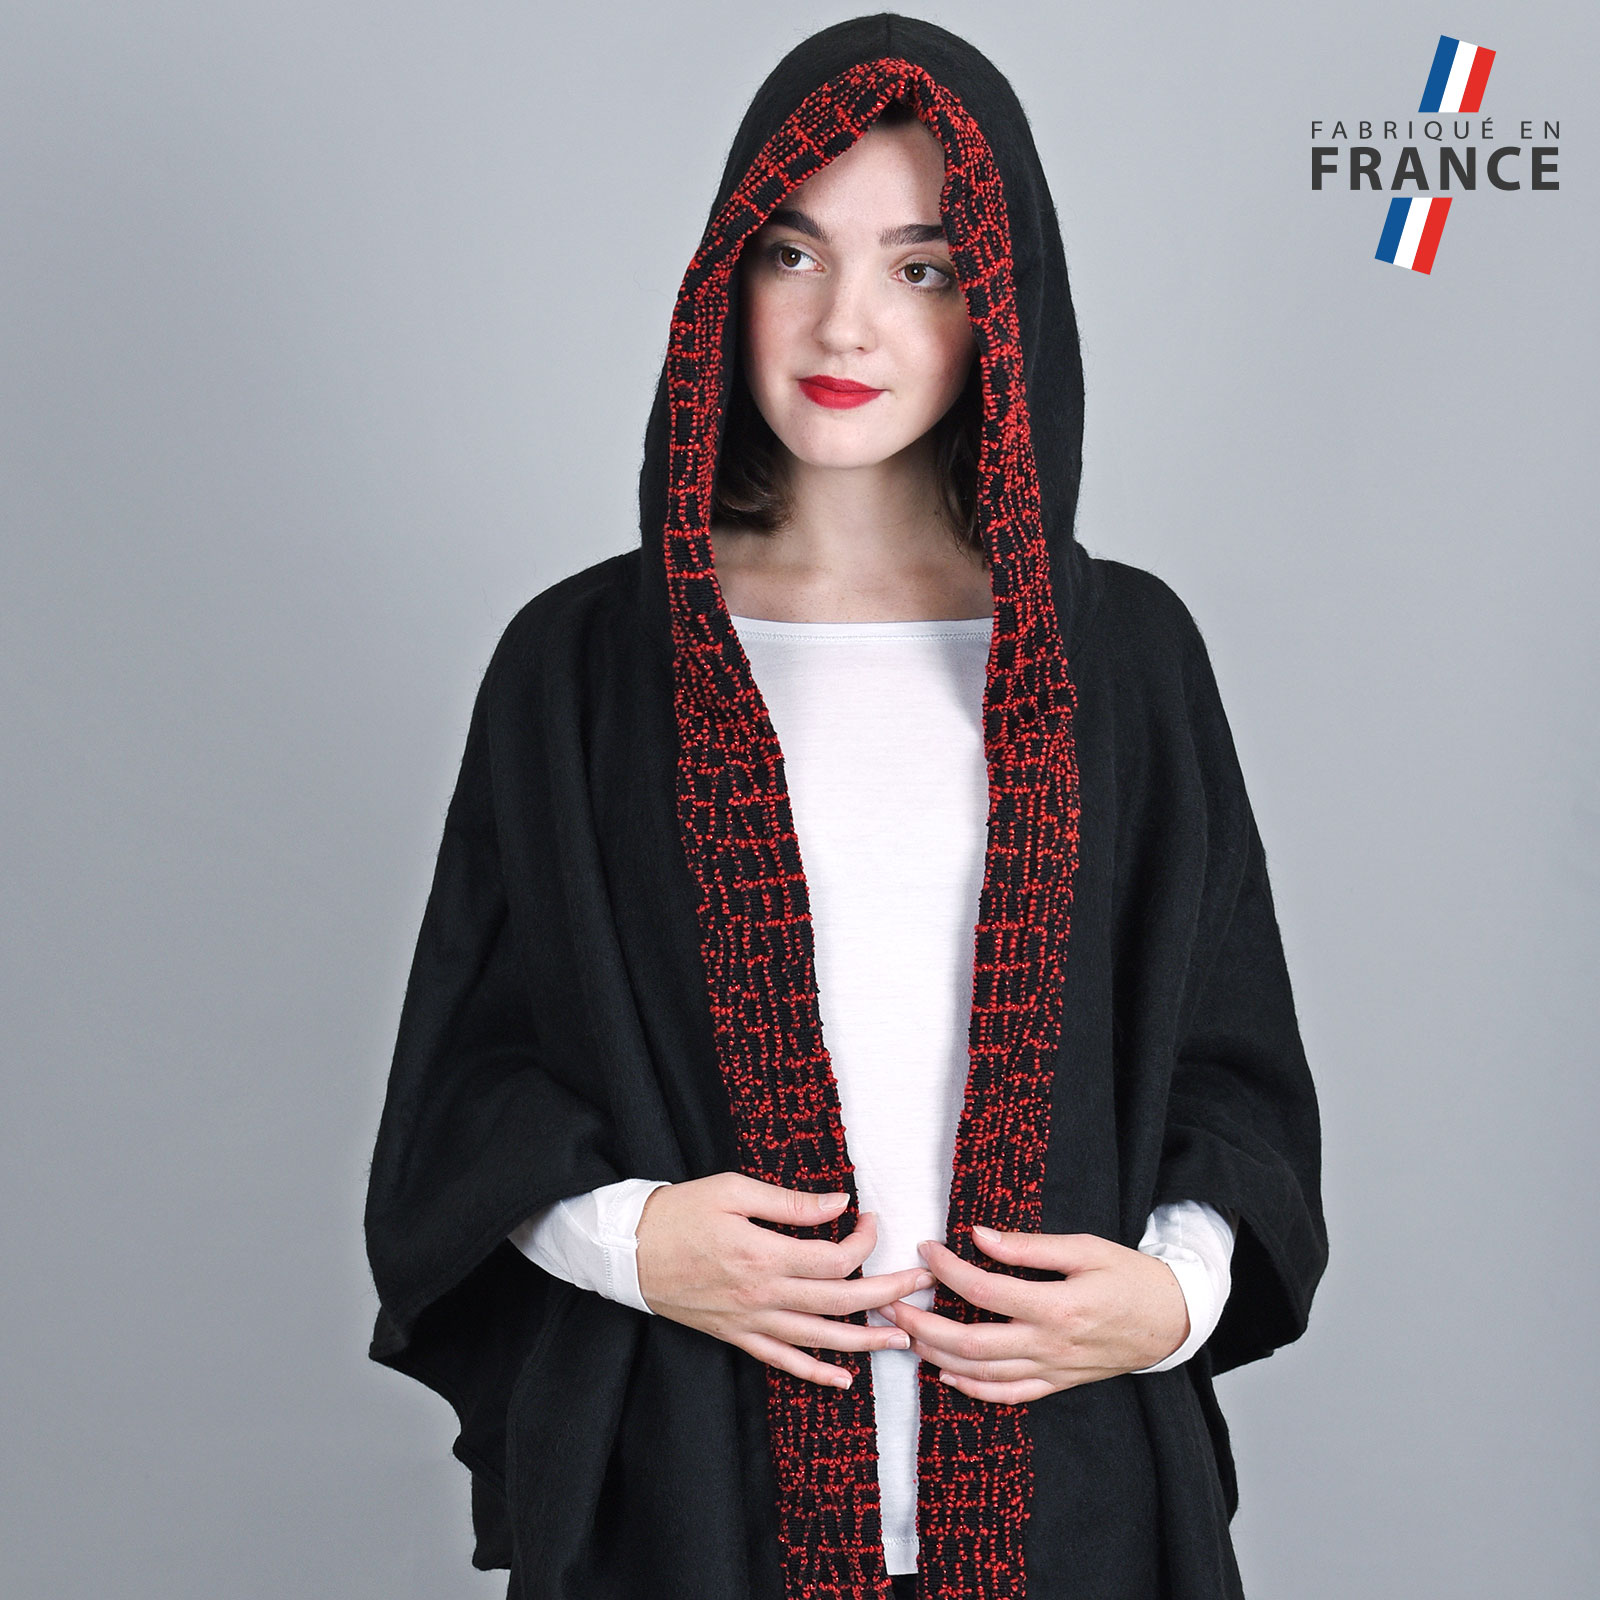 AT-03247-VF16-2-LB_FR-poncho-a-capuche-perles-rouge-fabrication-francaise